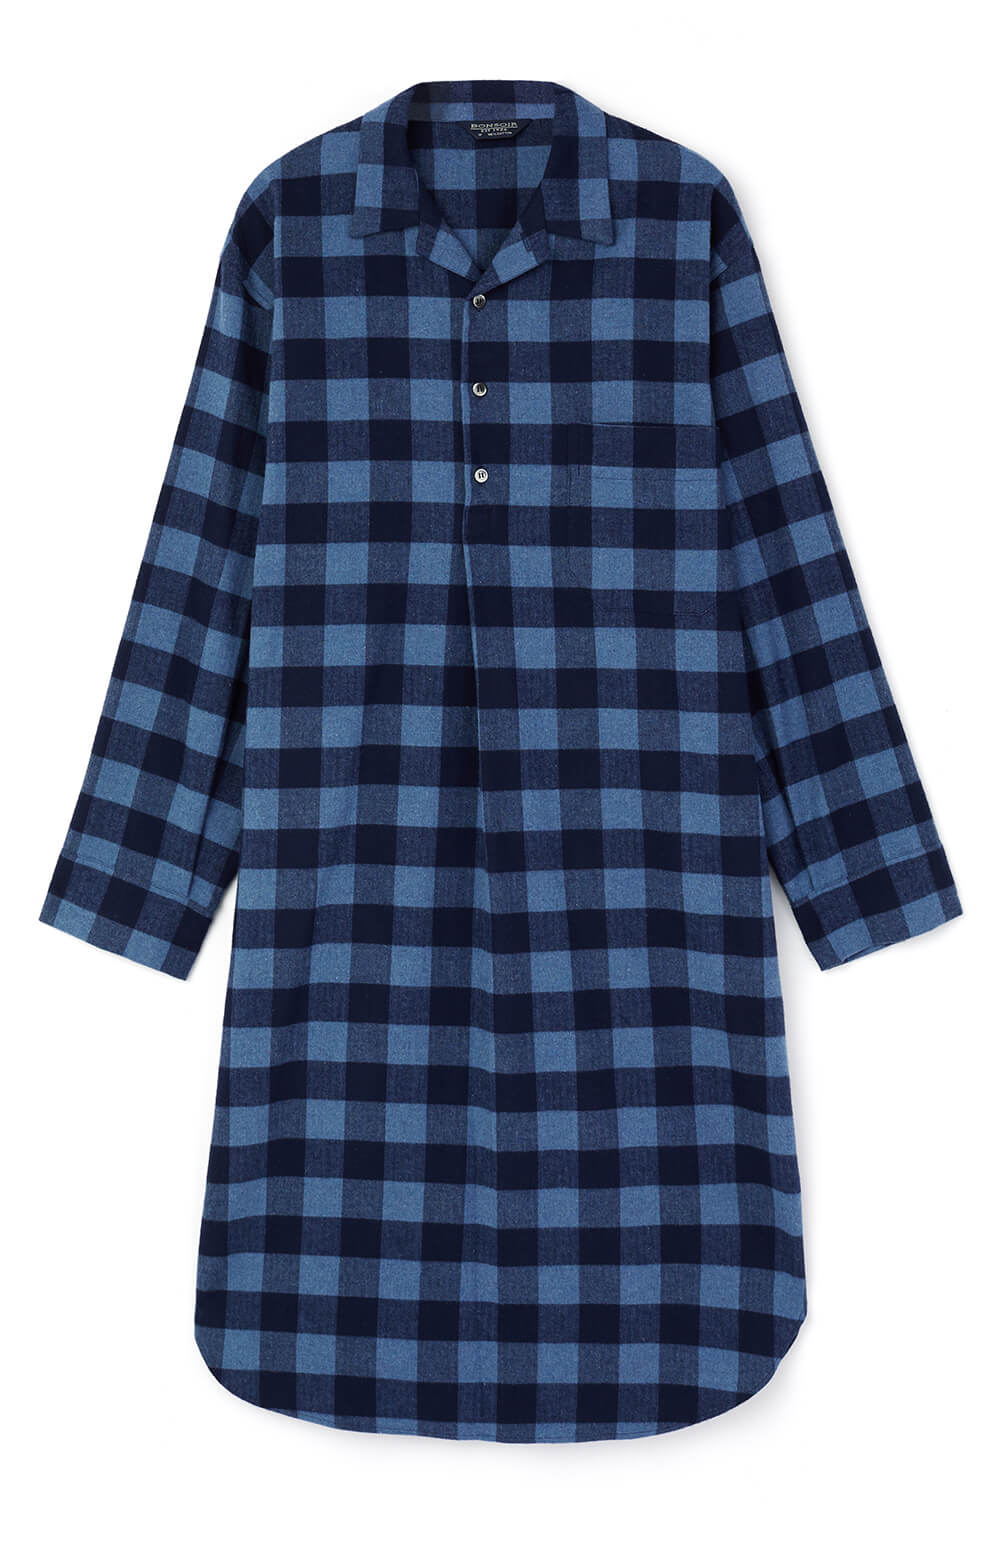 Brushed Cotton Nightshirt (jmnm) - Howard | Bonsoir of London